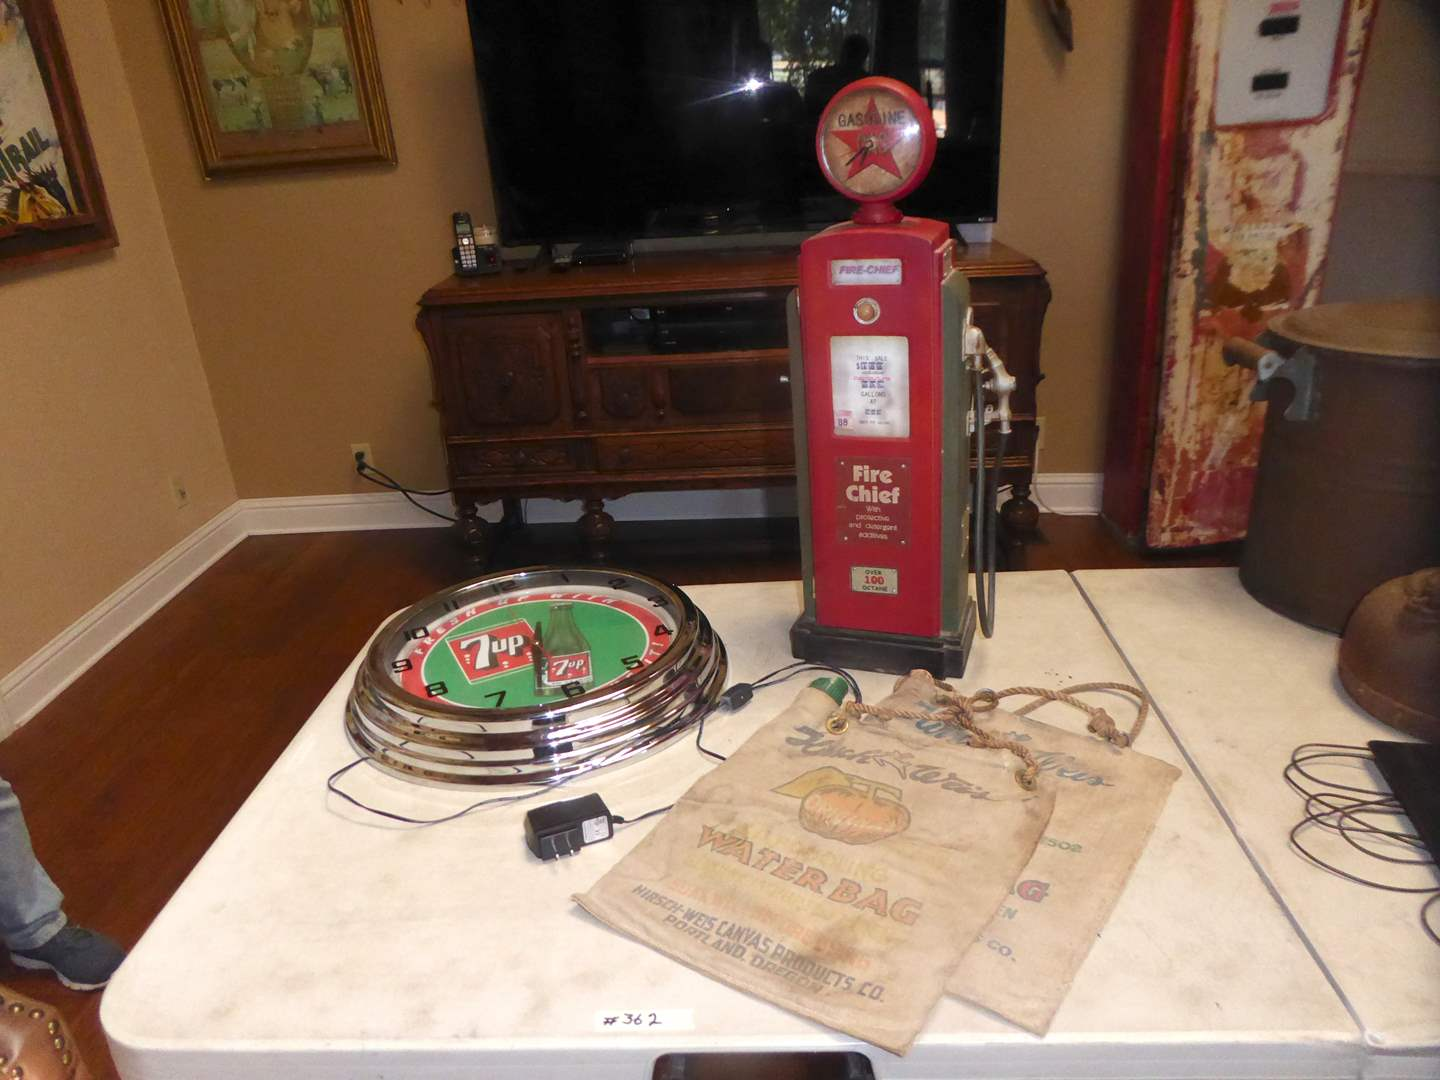 Lot # 362 - Small Cute Gas Pump Novelty Cabinet, Neon 7-Up Clock & Water Bags  (main image)